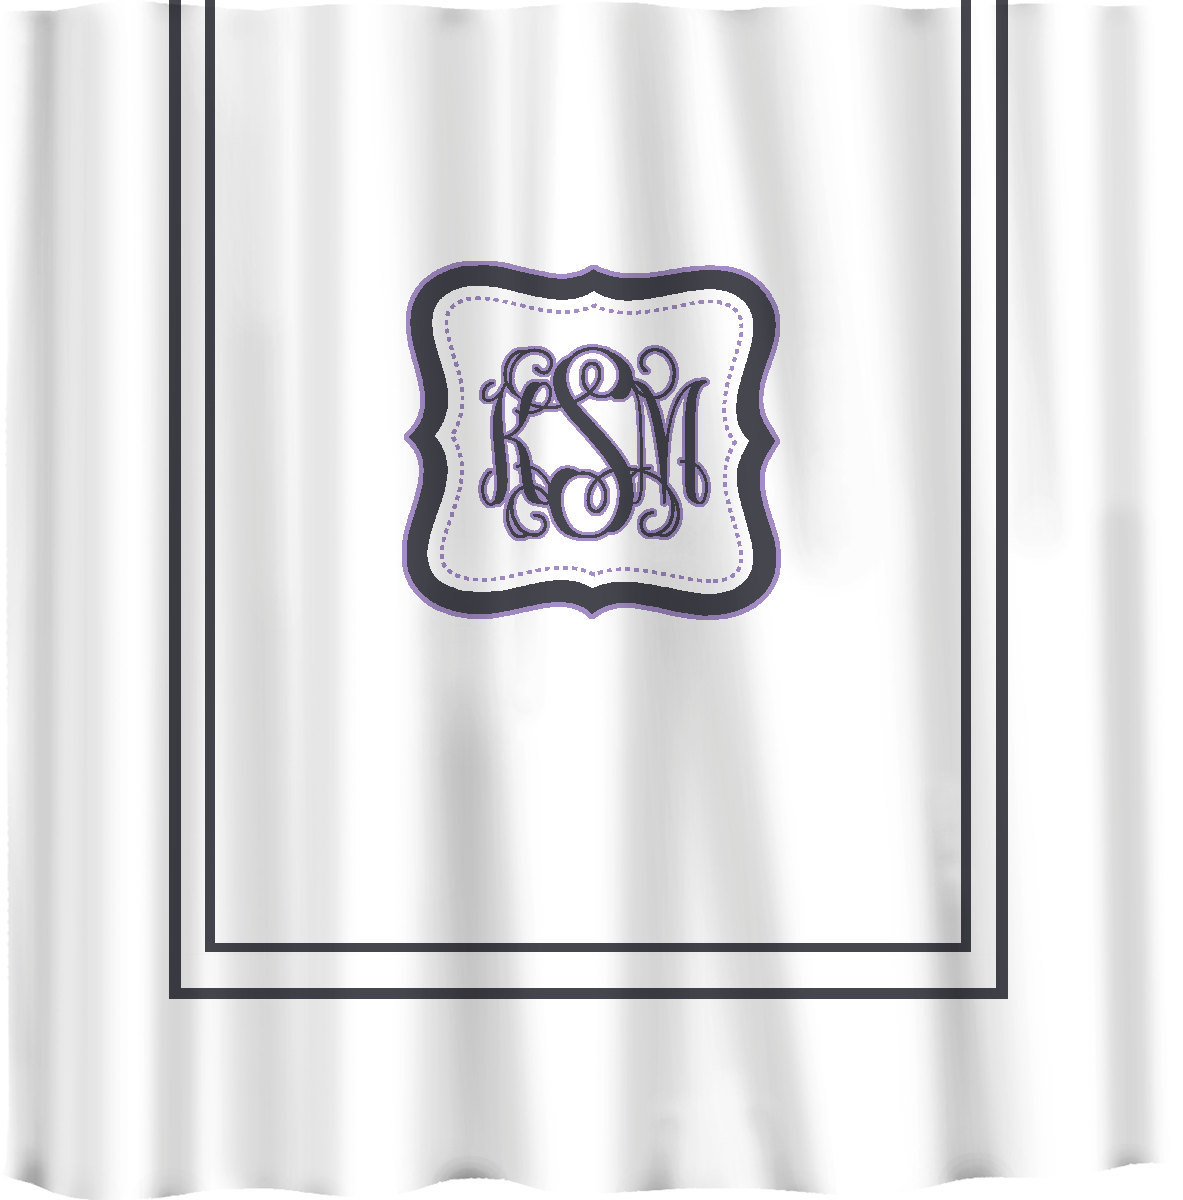 Custom Shower Curtain -Simplicity with monogram in your colors - any color backg image 5